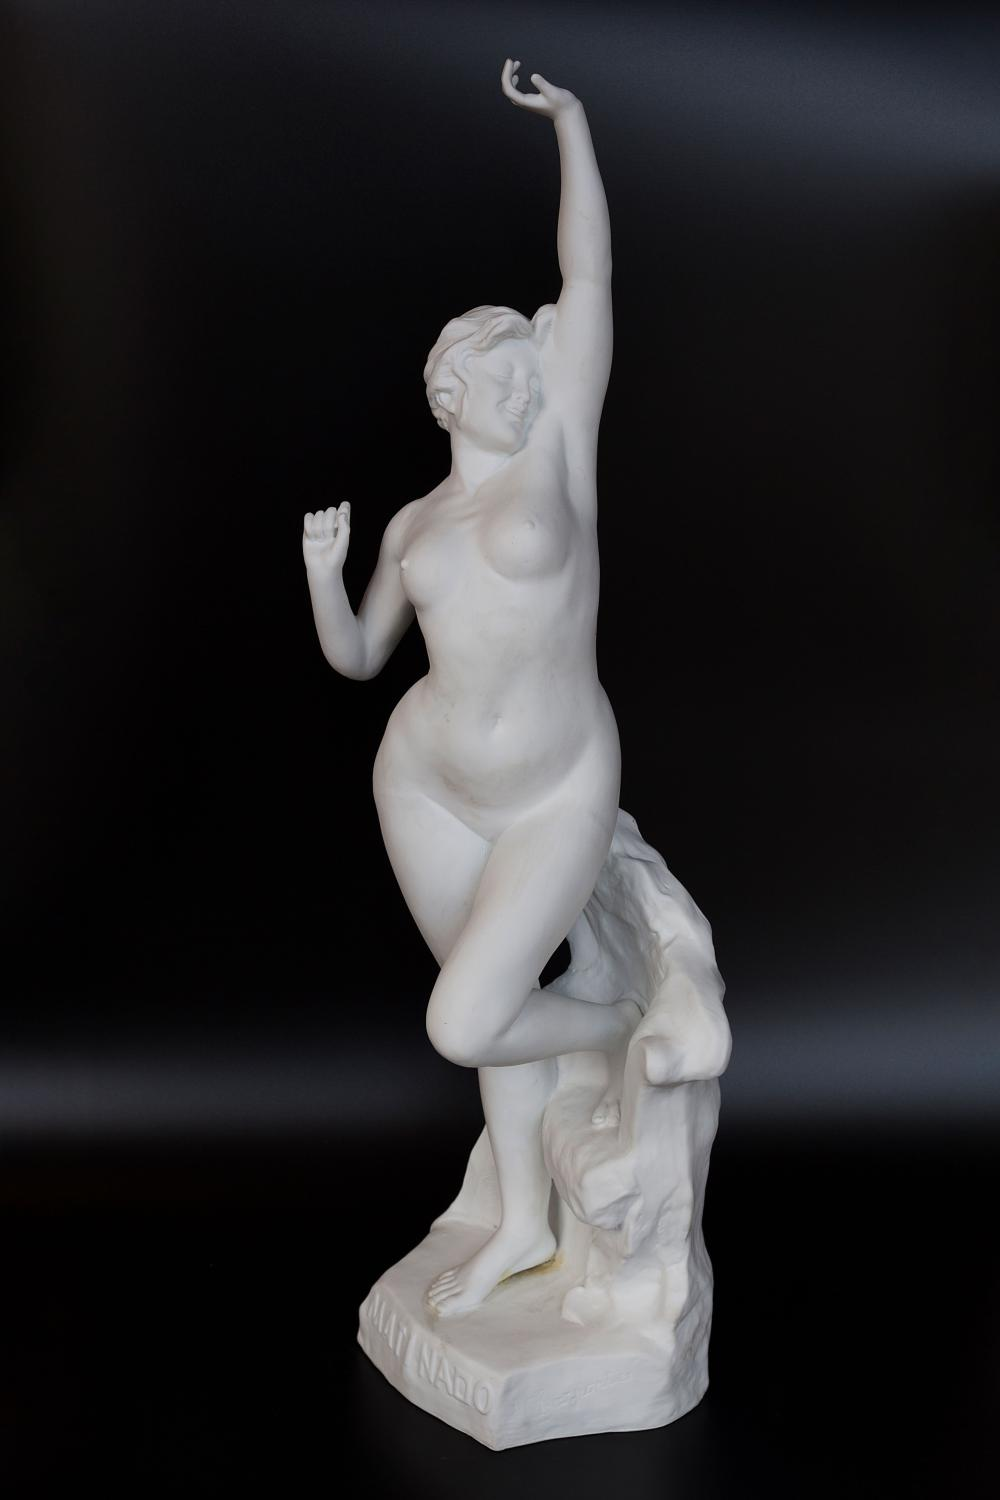 Exeptional French antique Bisque porcelain sculpture of a nude woman made by the national manufacture of Sevres